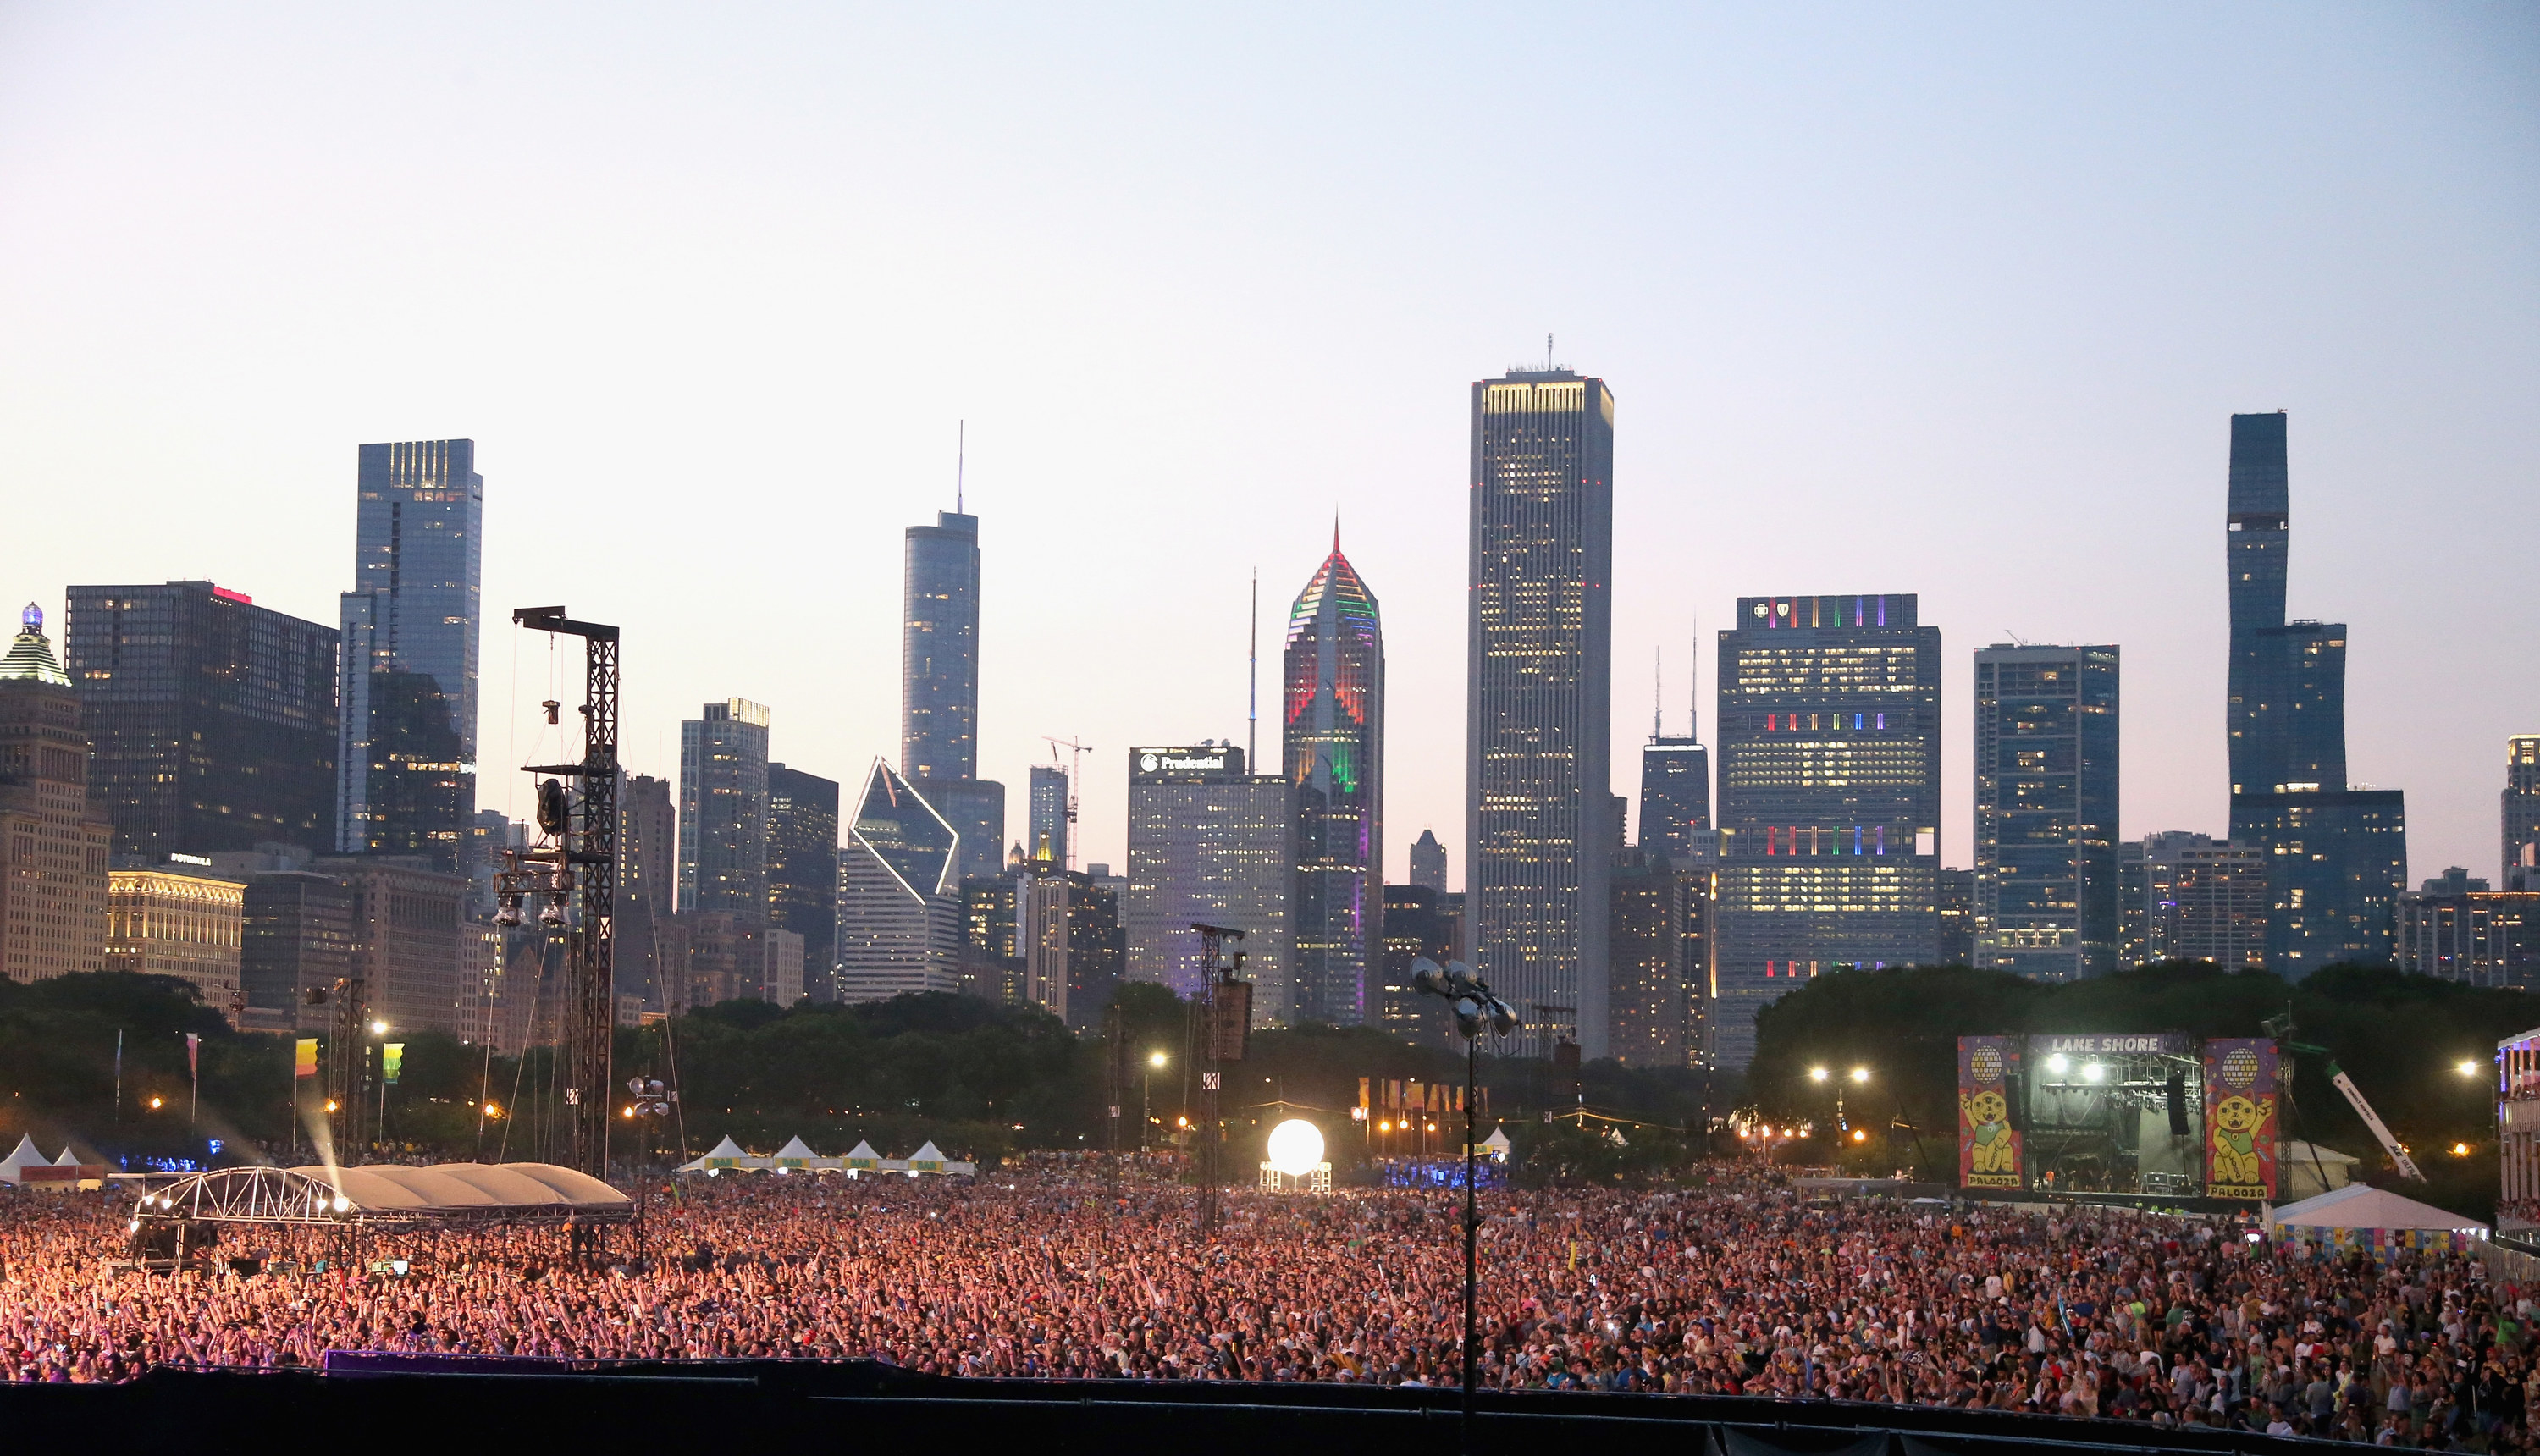 """The Chicago skyline lights up with the words """"Vacc to Lolla"""" behind a crowd of evening festival attendees at Lollapalooza music festival."""